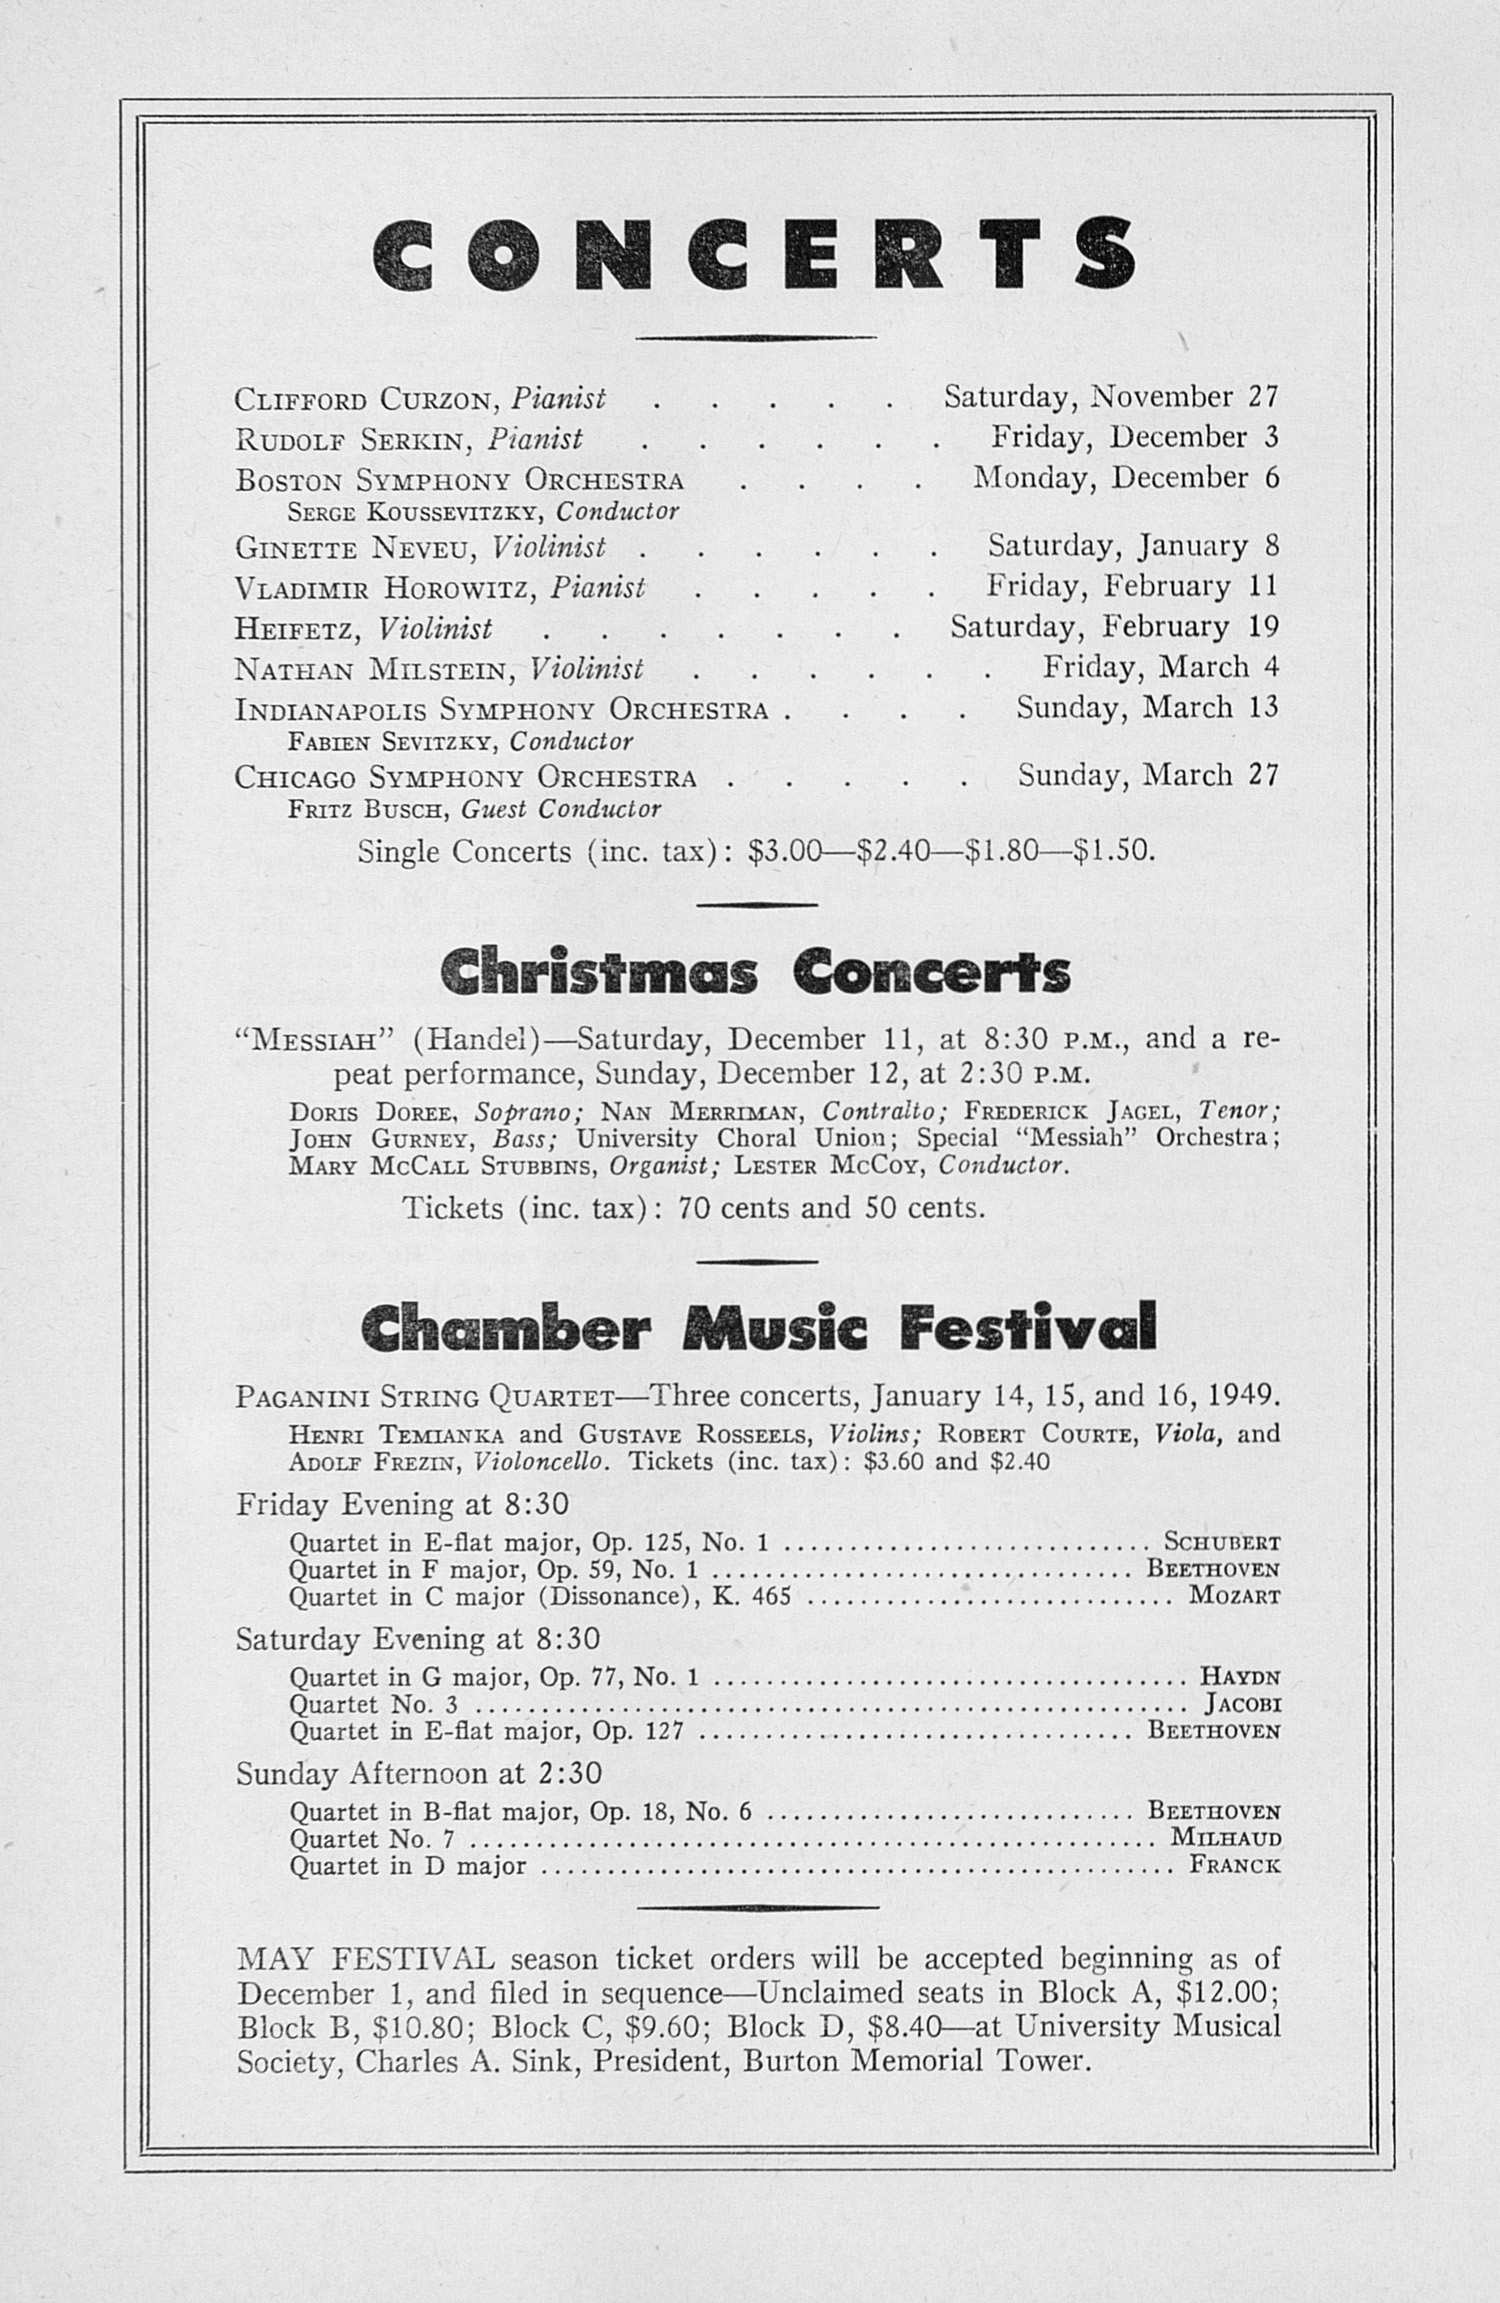 UMS Concert Program, November 18, 1948: Seventieth Annual Choral Union Concert Series -- Ezio Pinza image